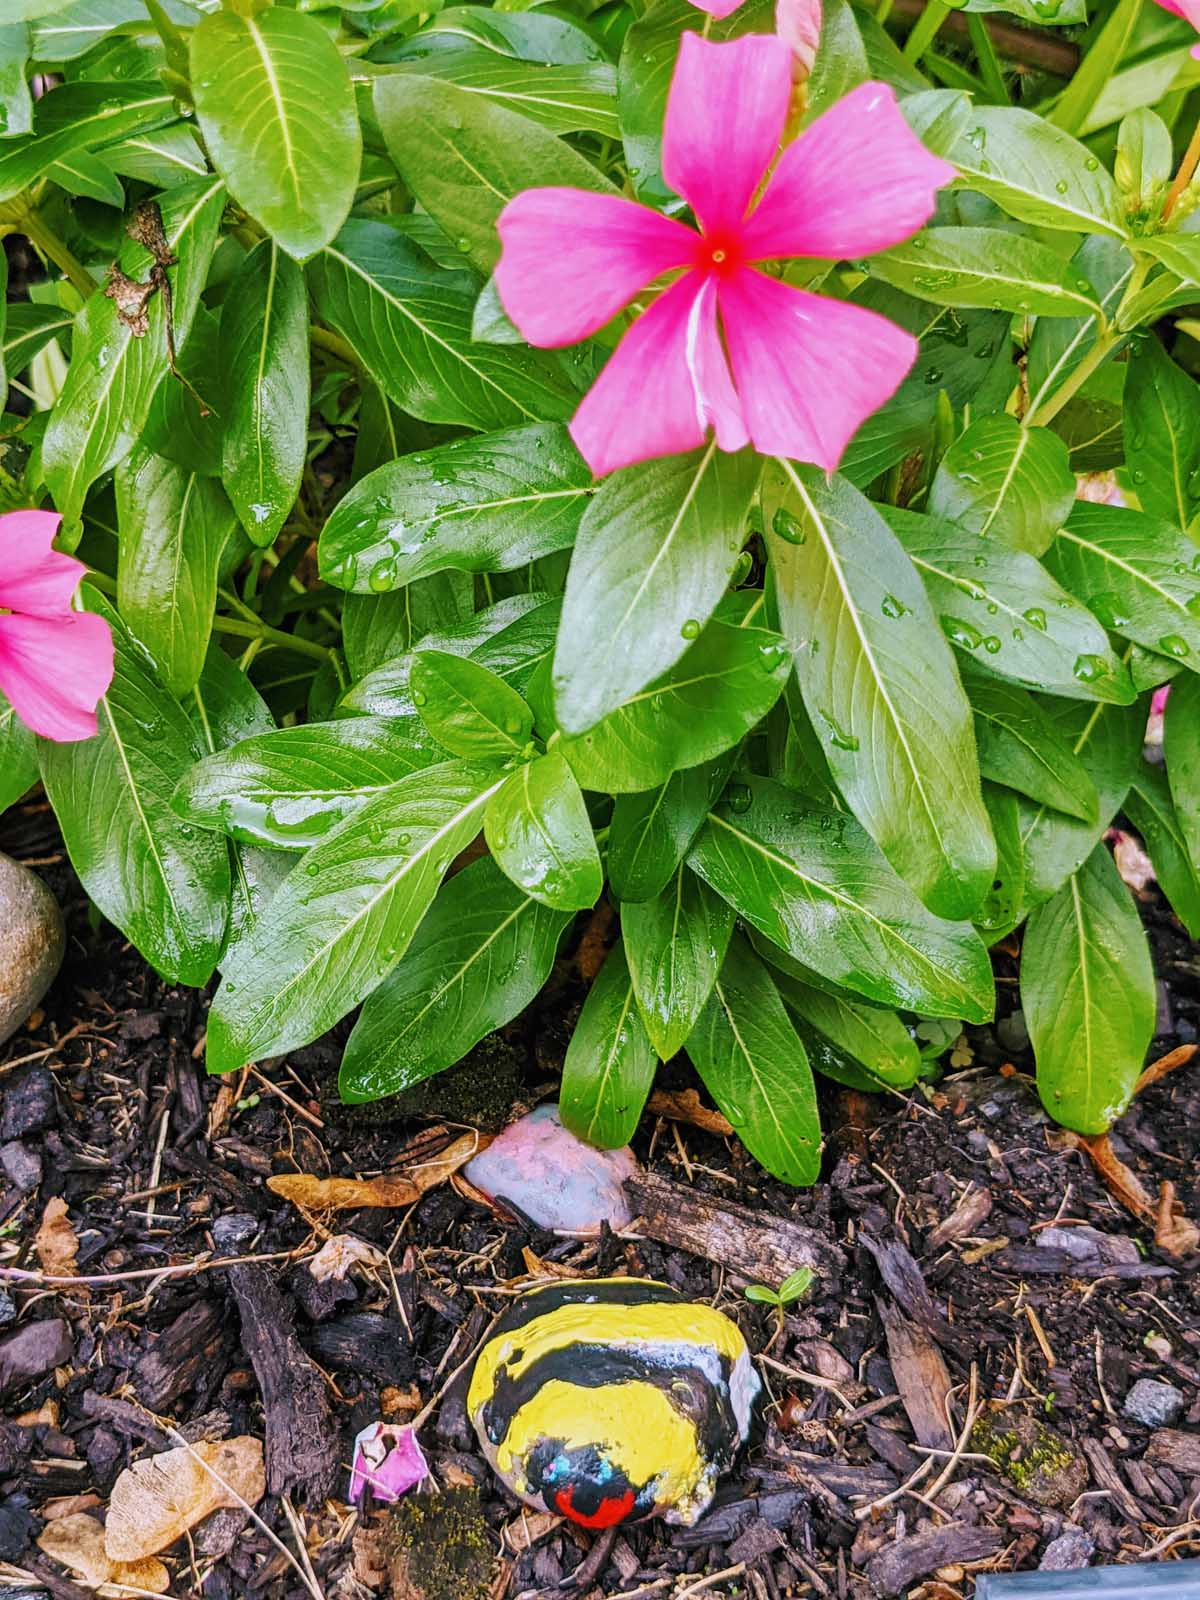 Bumble Bee Painted Rock with Pink Vinca Flower in the Garden